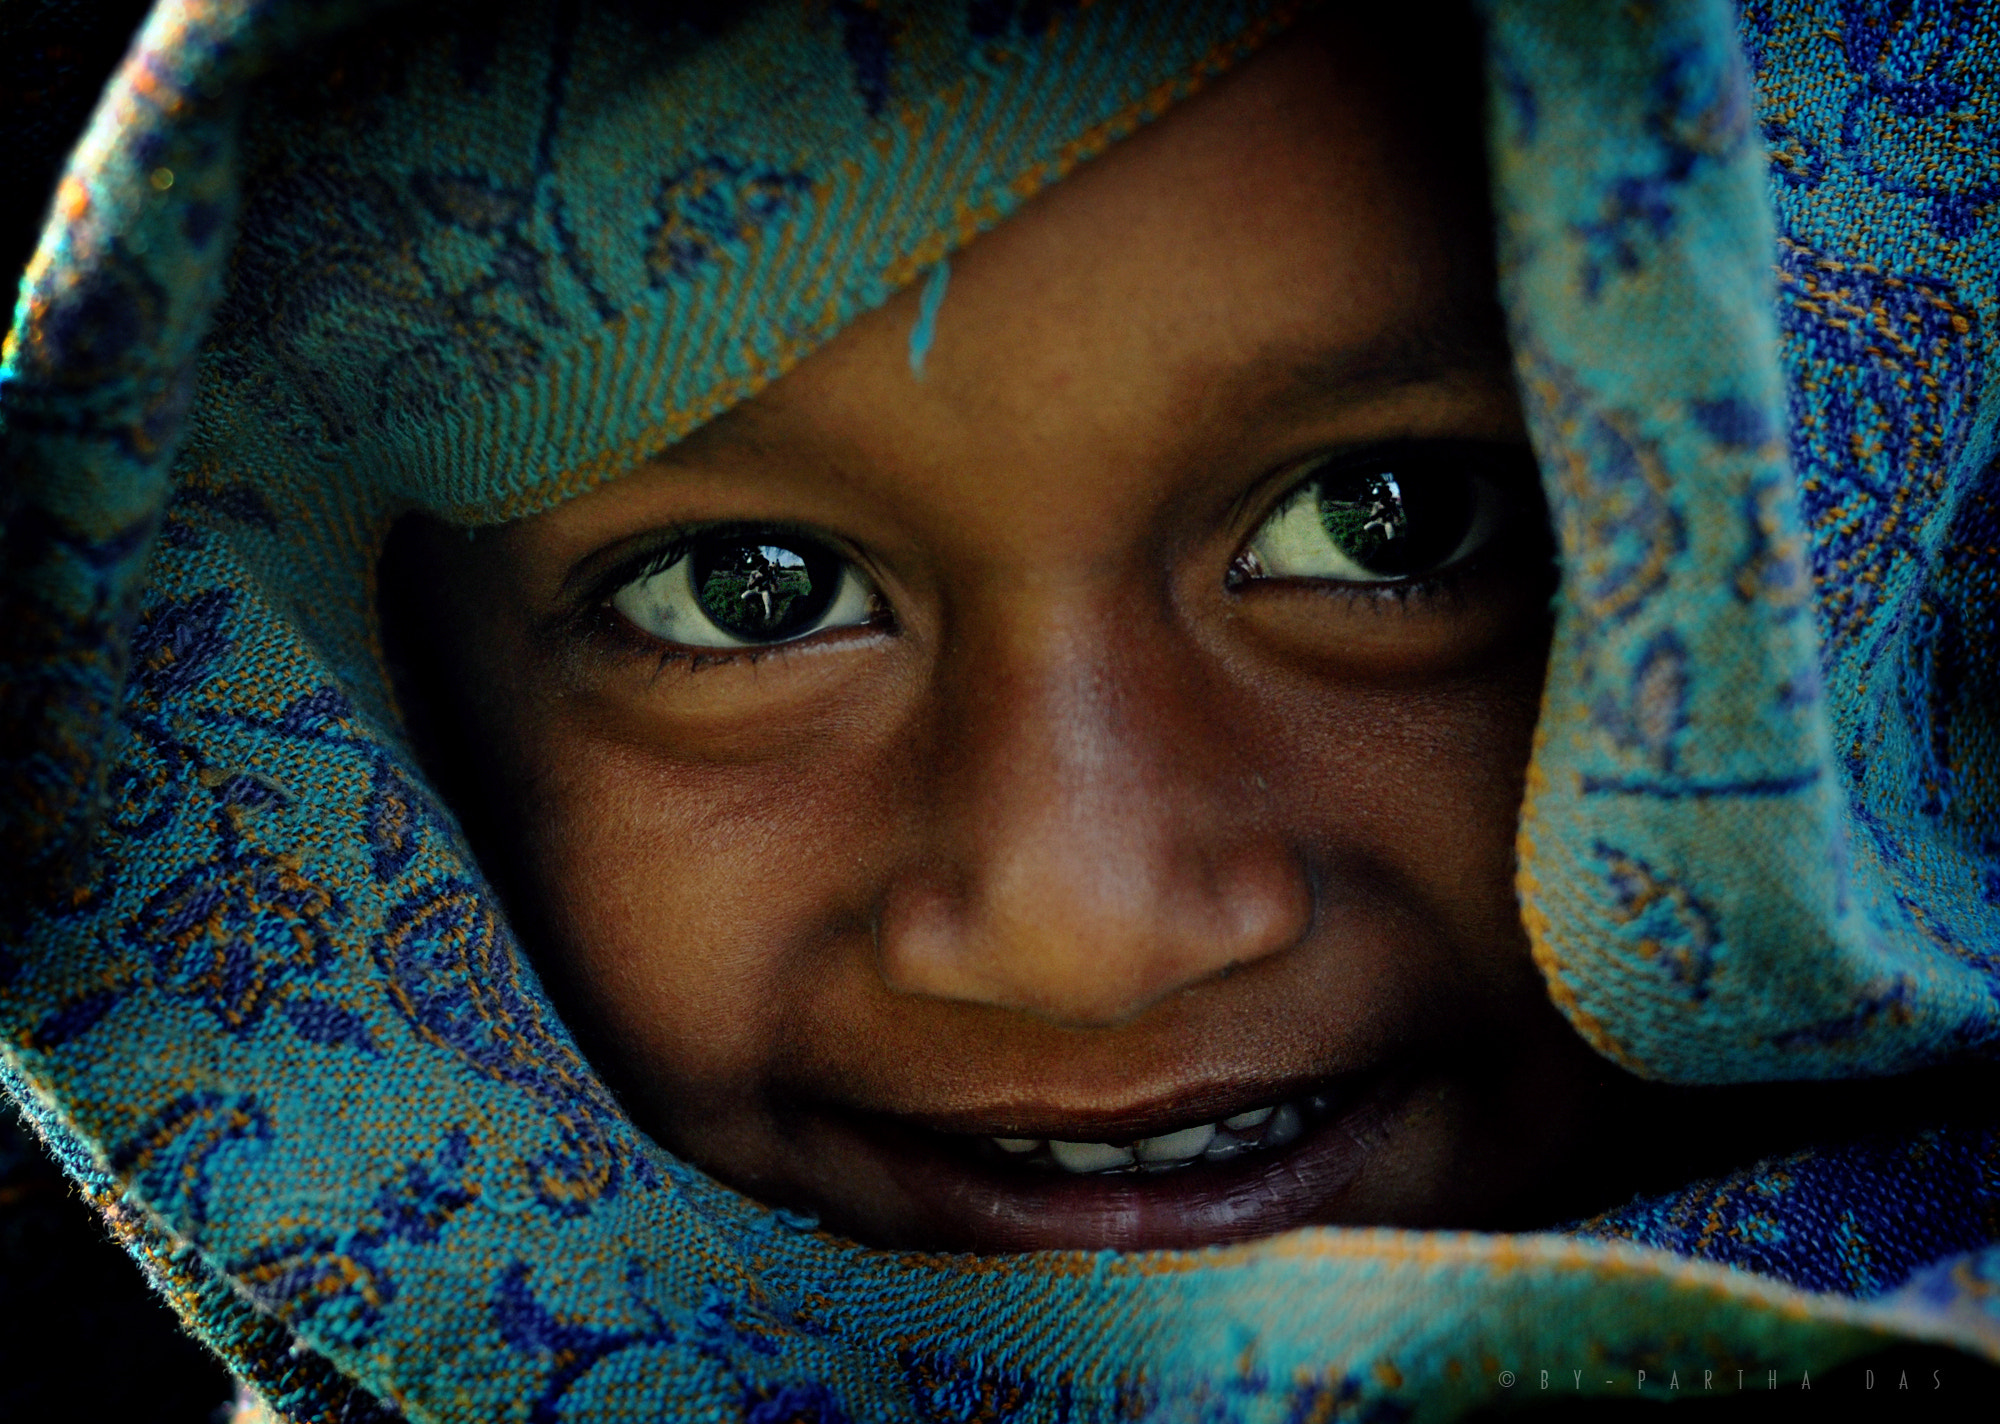 Photograph Your one sweet look... by Partha Das on 500px